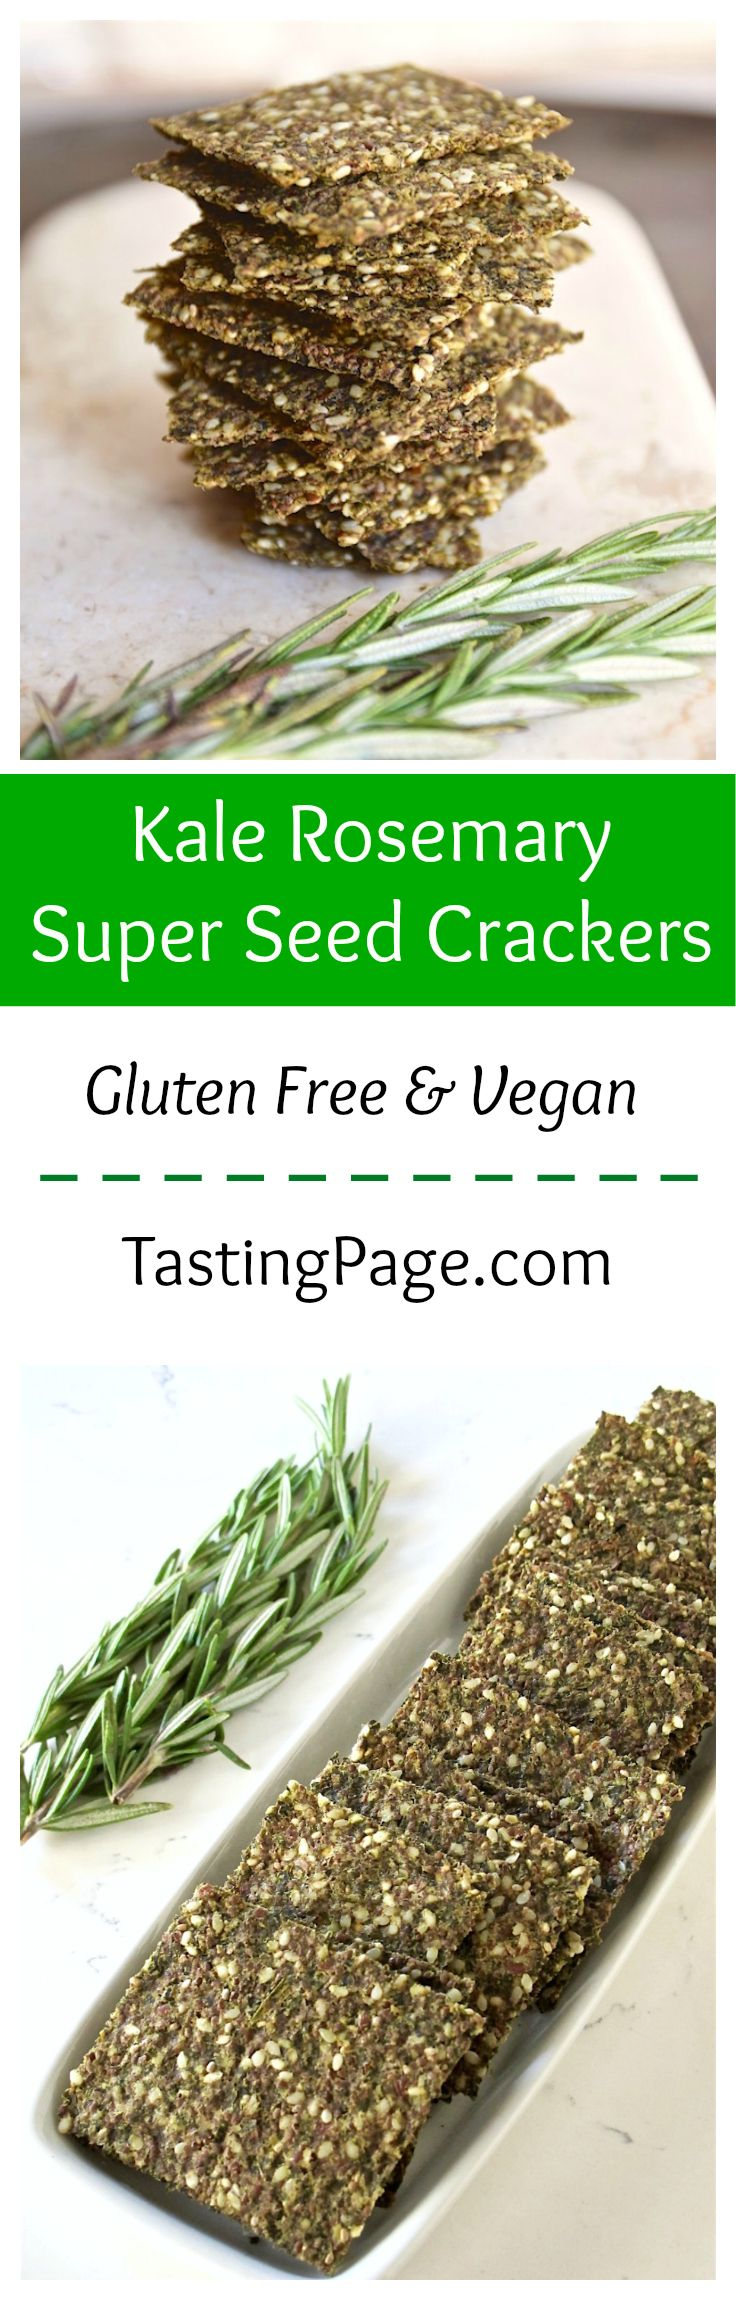 Gluten Free and Vegan Baked Kale Rosemary Super Seed Crackers | TastingPage.com